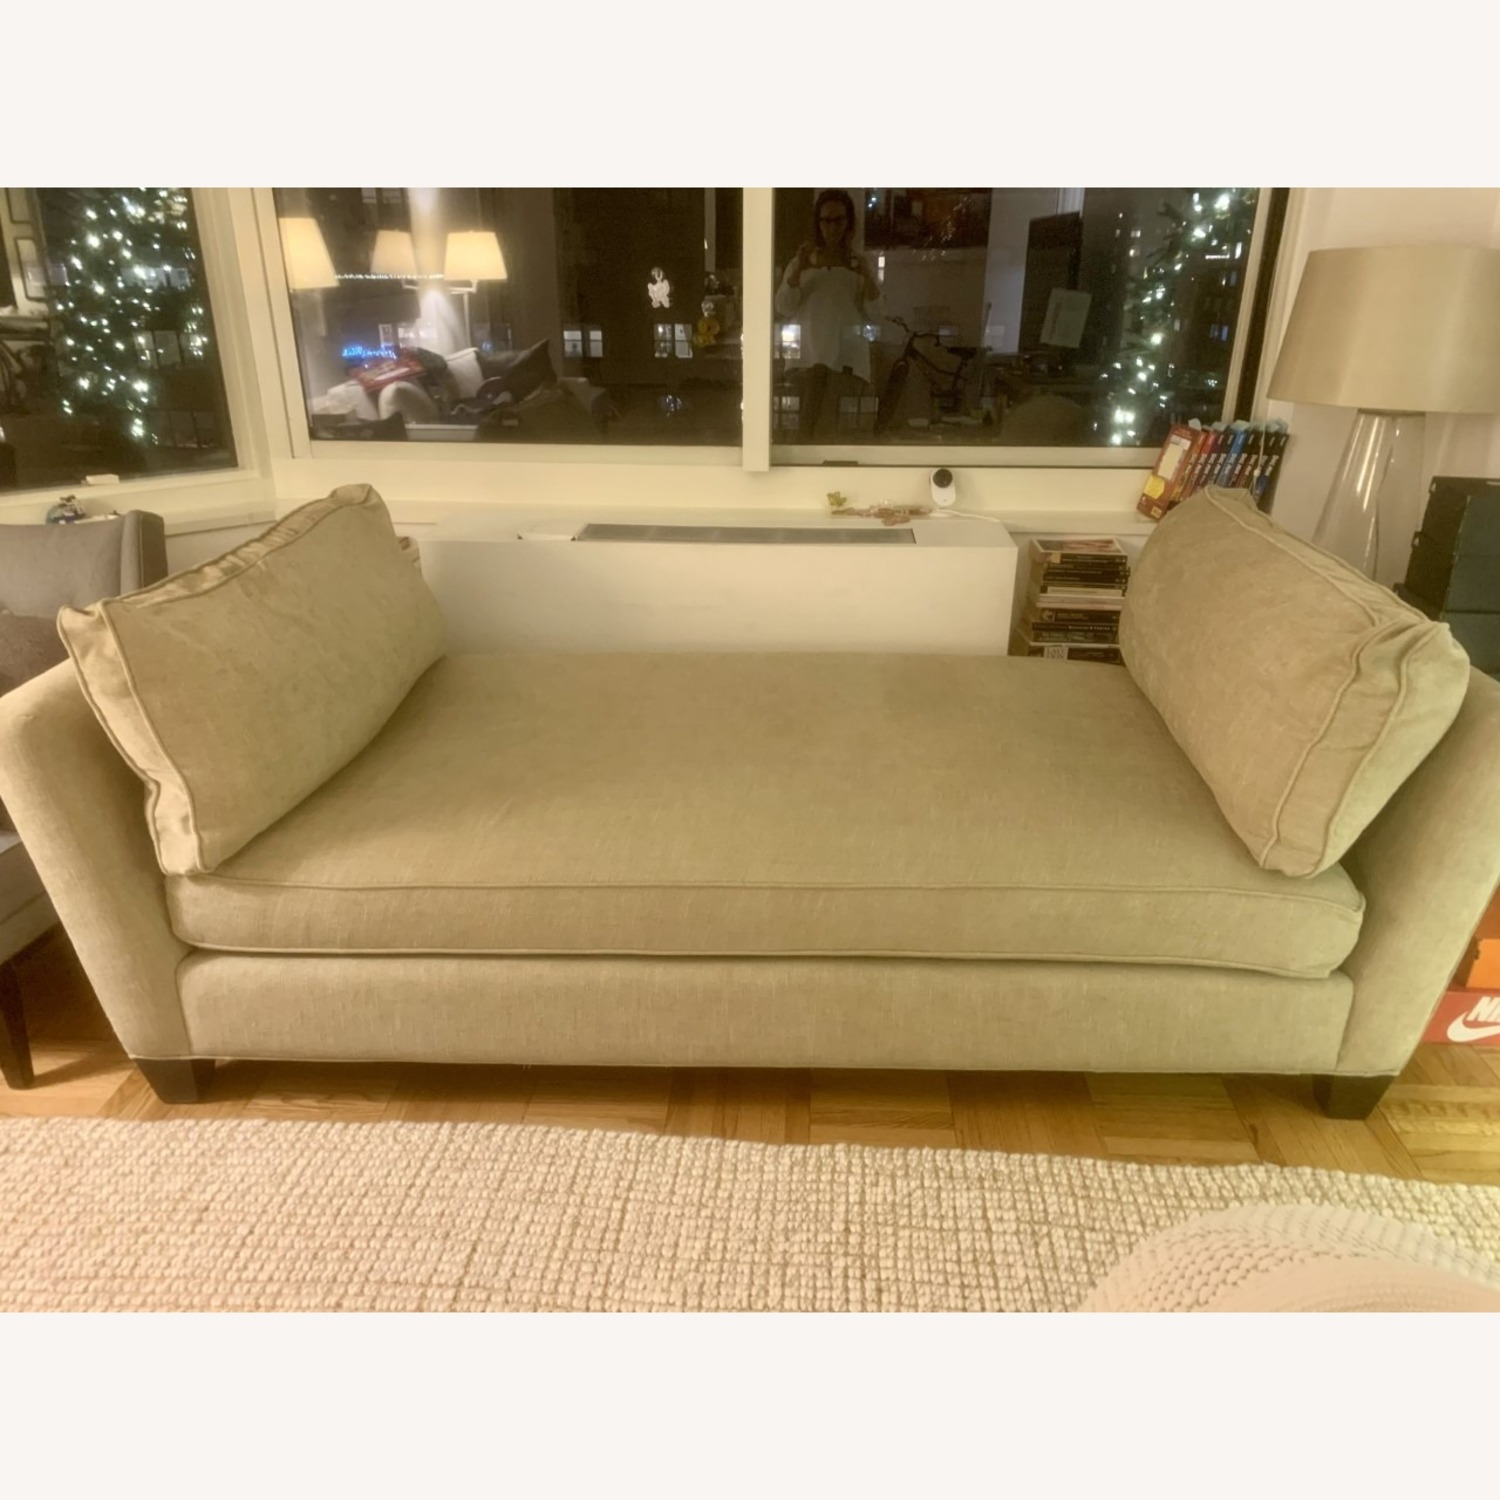 Crate & Barrel Simone Daybed - image-3